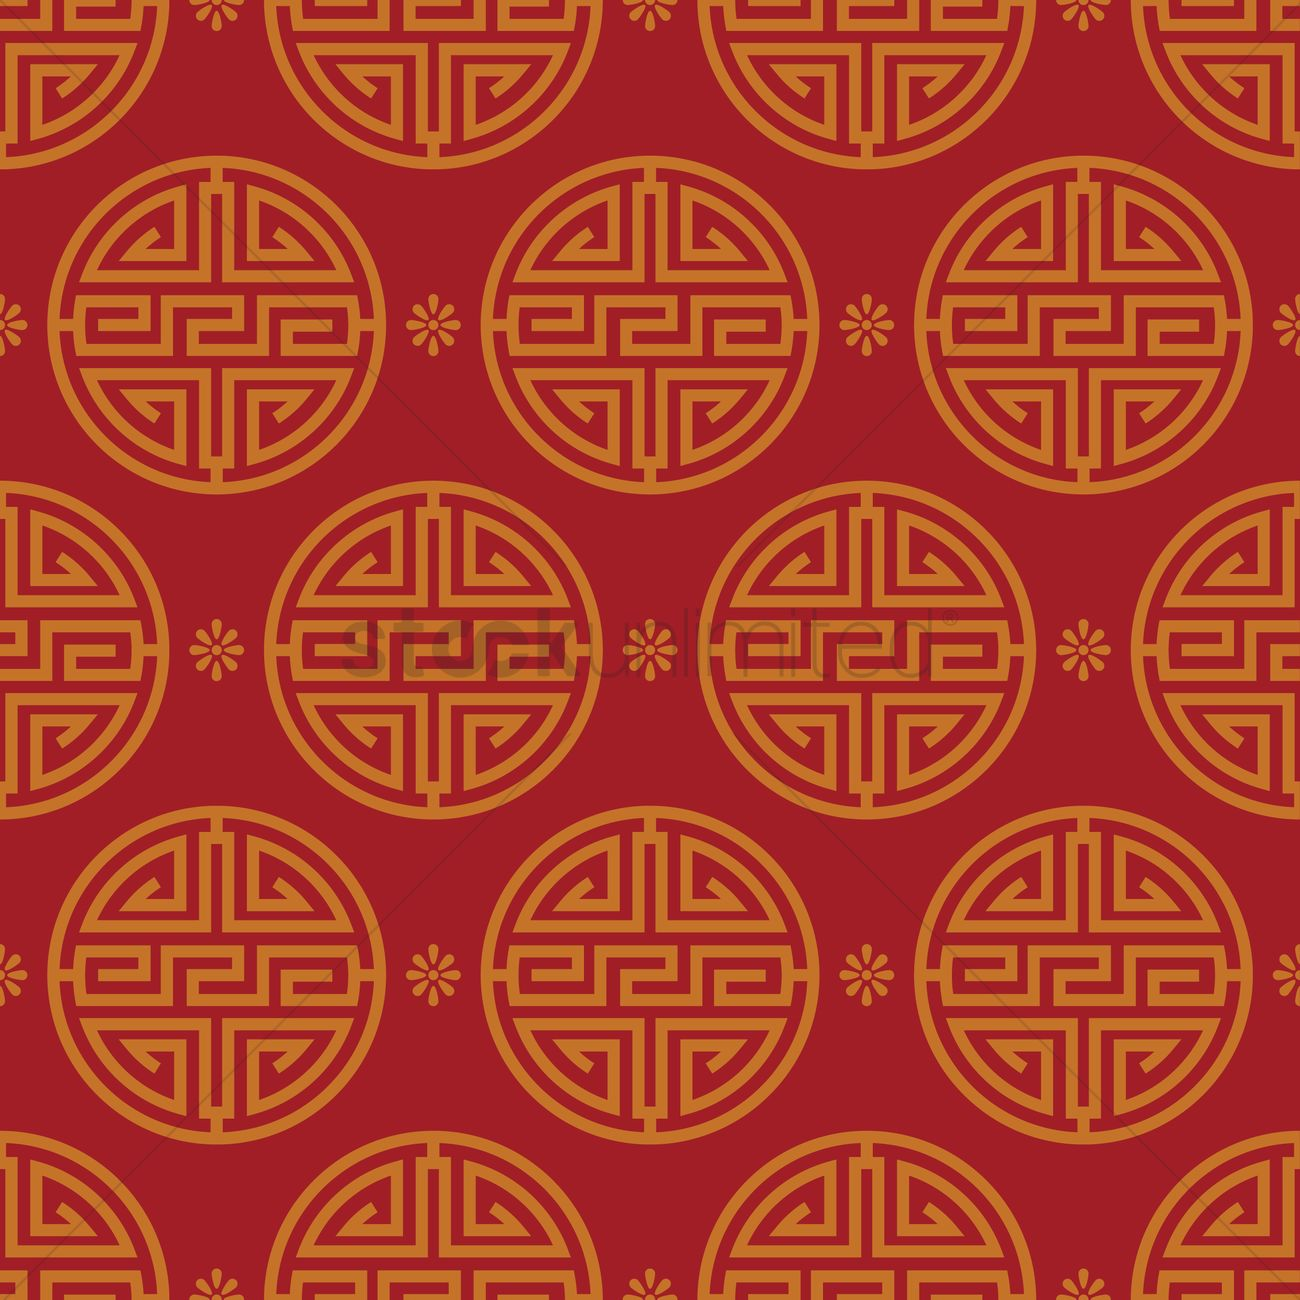 Chinese pattern background vector image 1577041 for Chinese vector